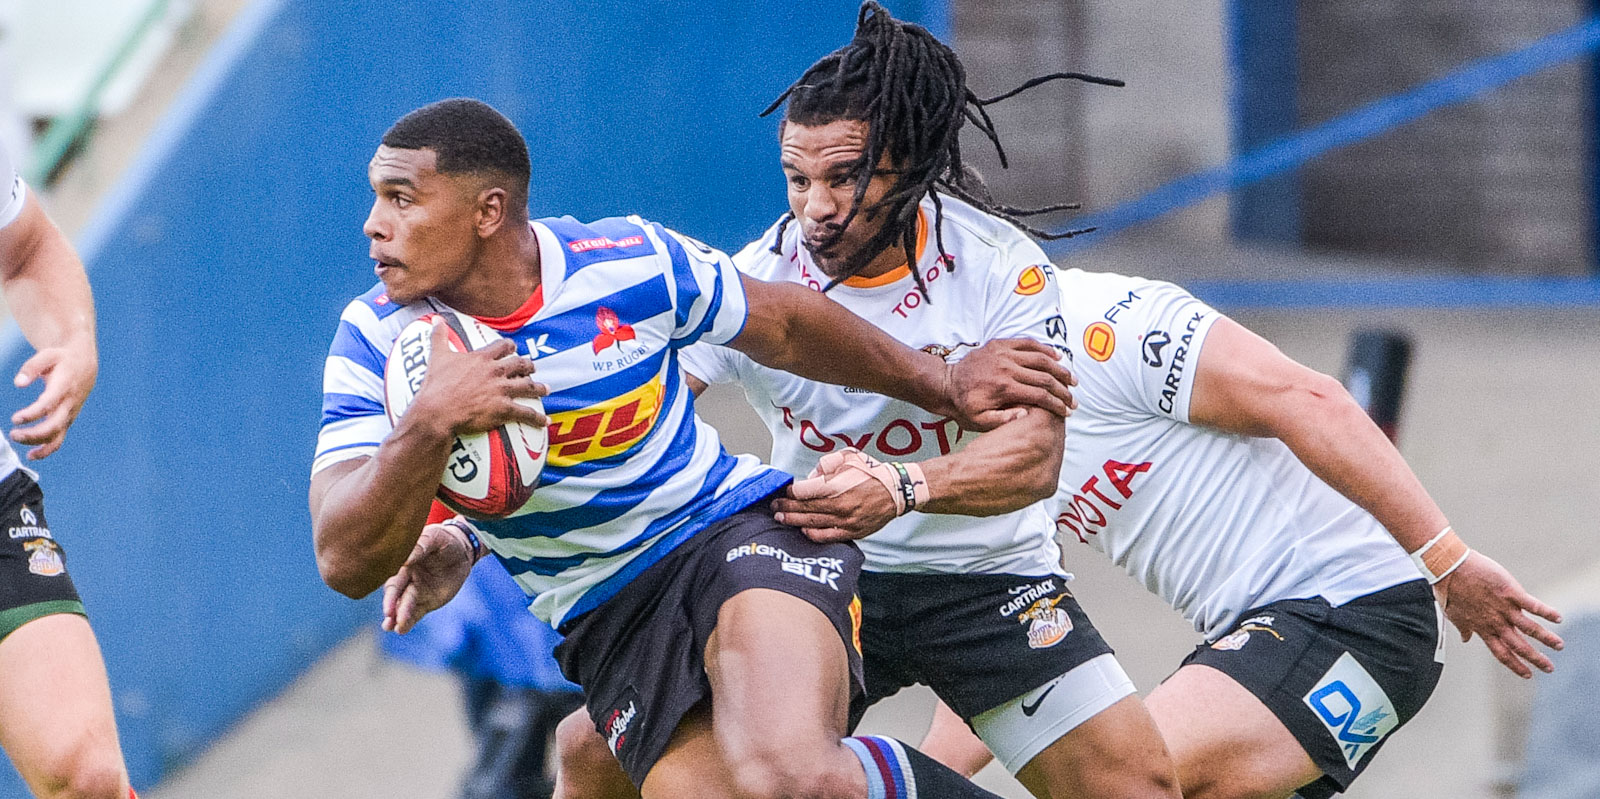 The Toyota Cheetahs' Rosco Specman stops Damian Willemse of DHL WP